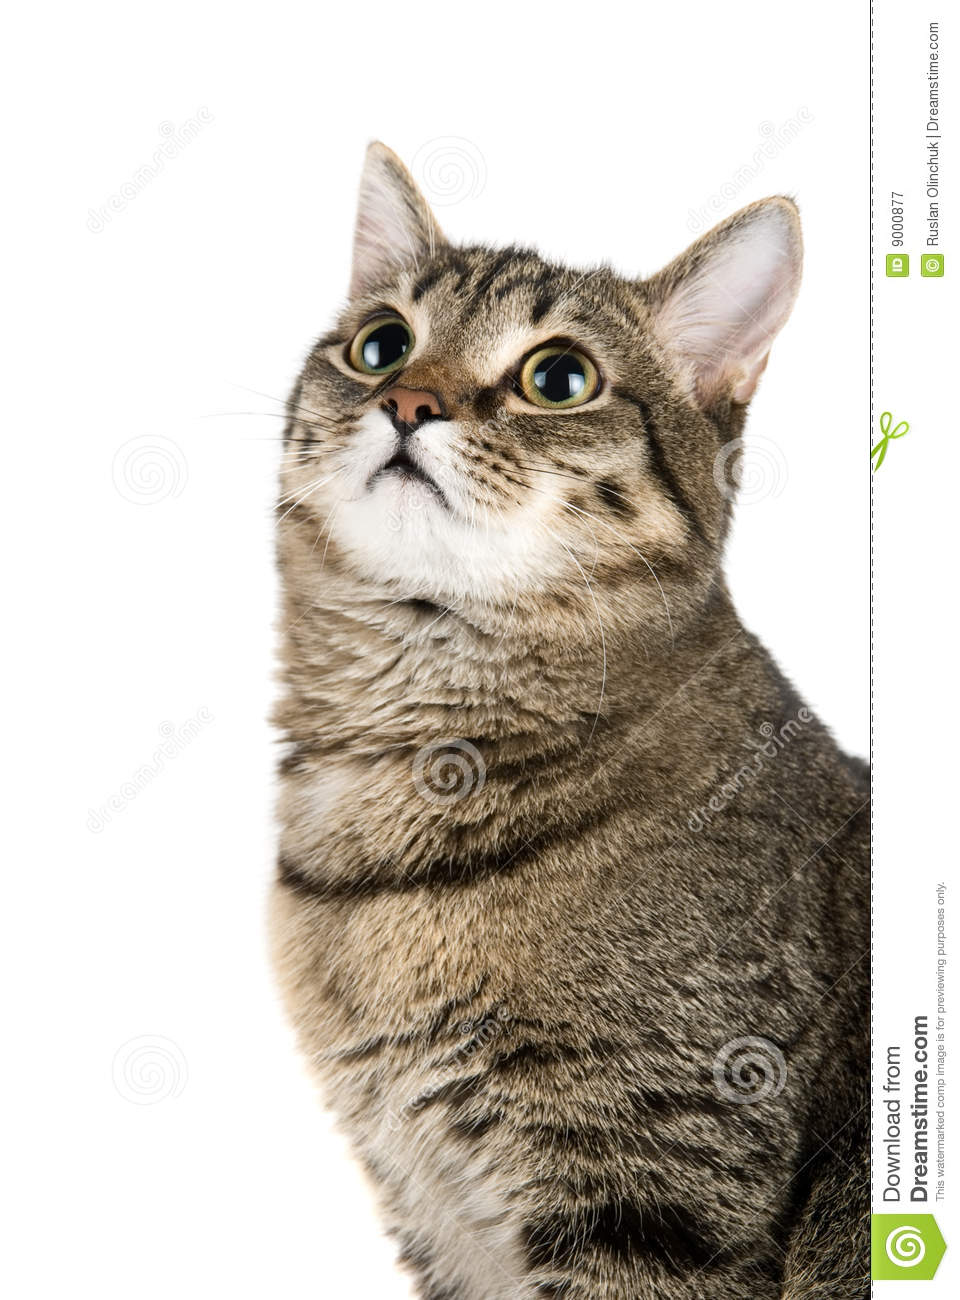 Top Looking Cat Royalty Free Stock Photography - Image ...